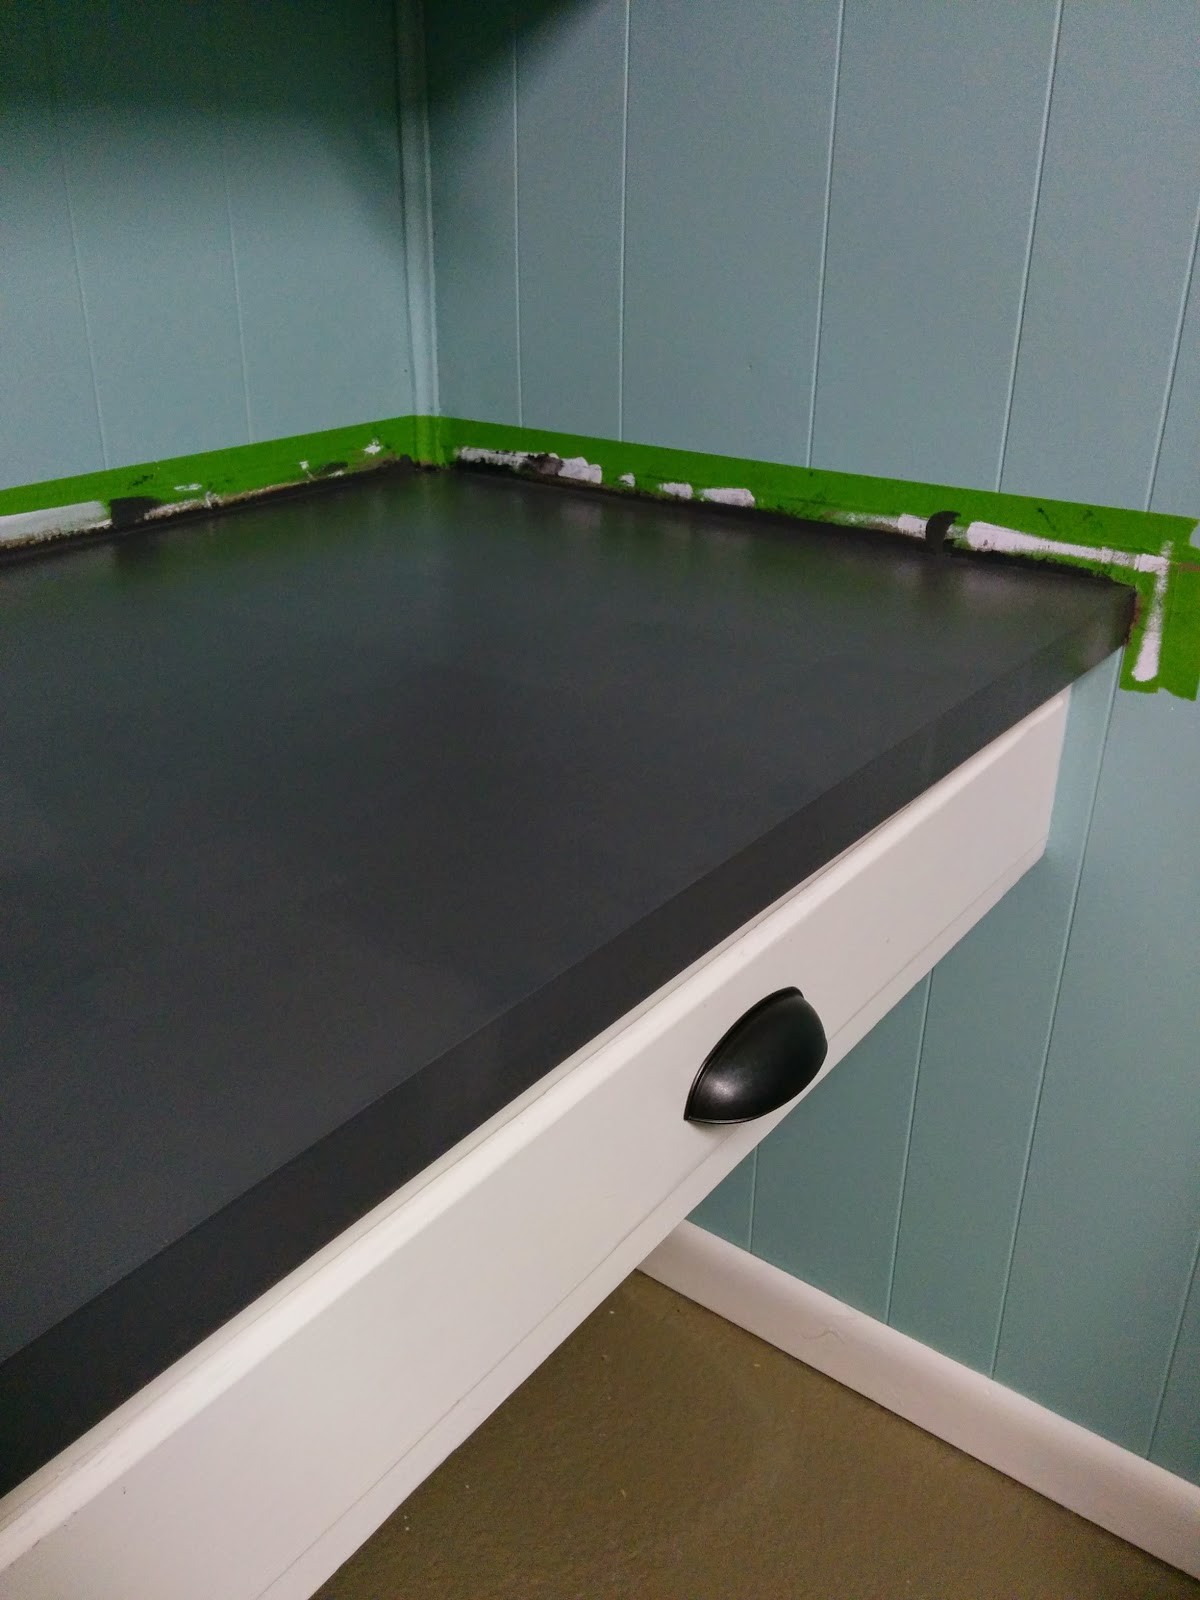 How to Paint a Laminate Counter Top #brightideas #tidethat #ad